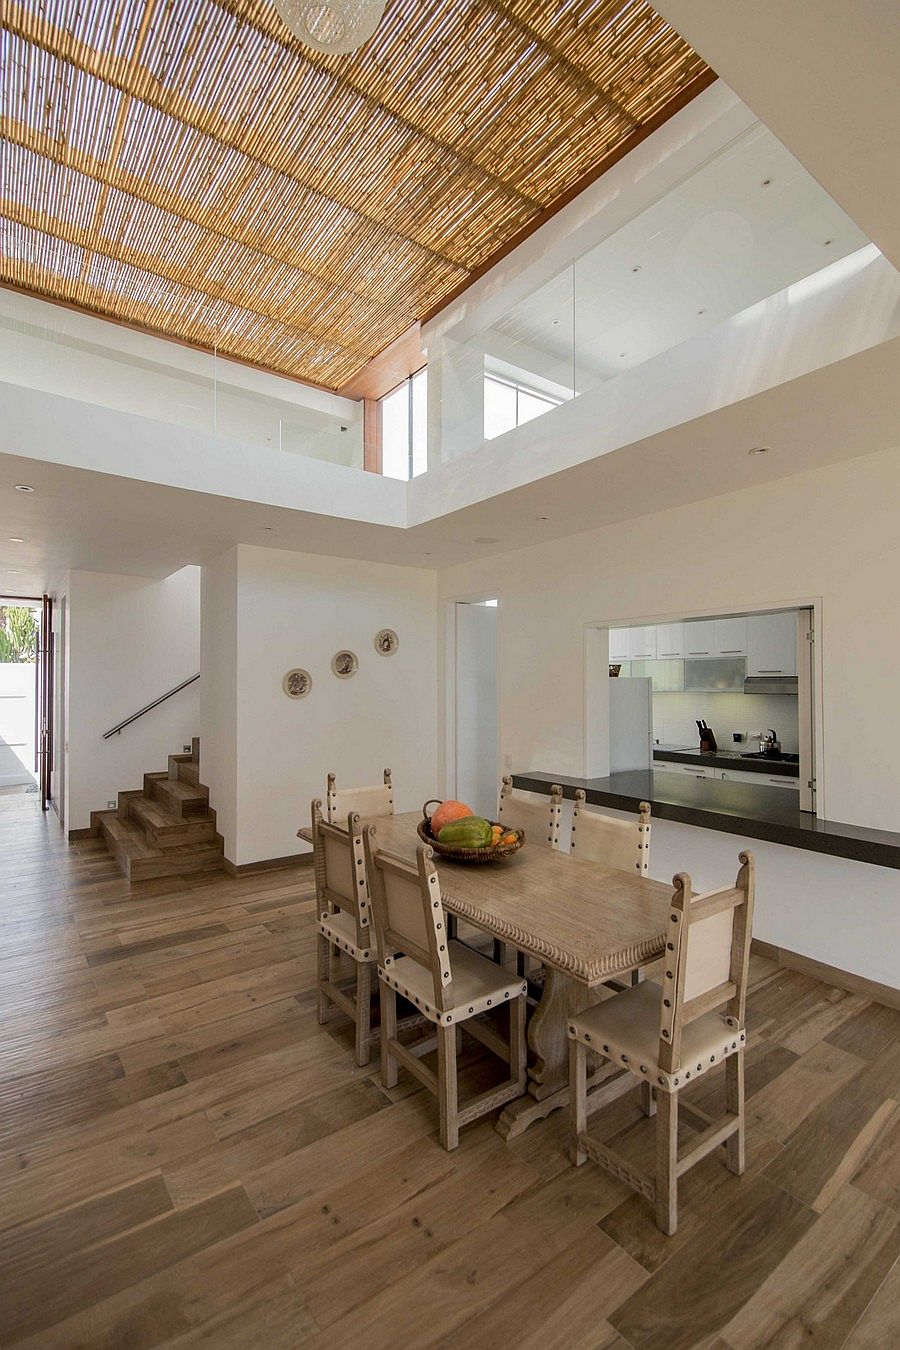 Dining area of the modern home in Peru with unassuming decor